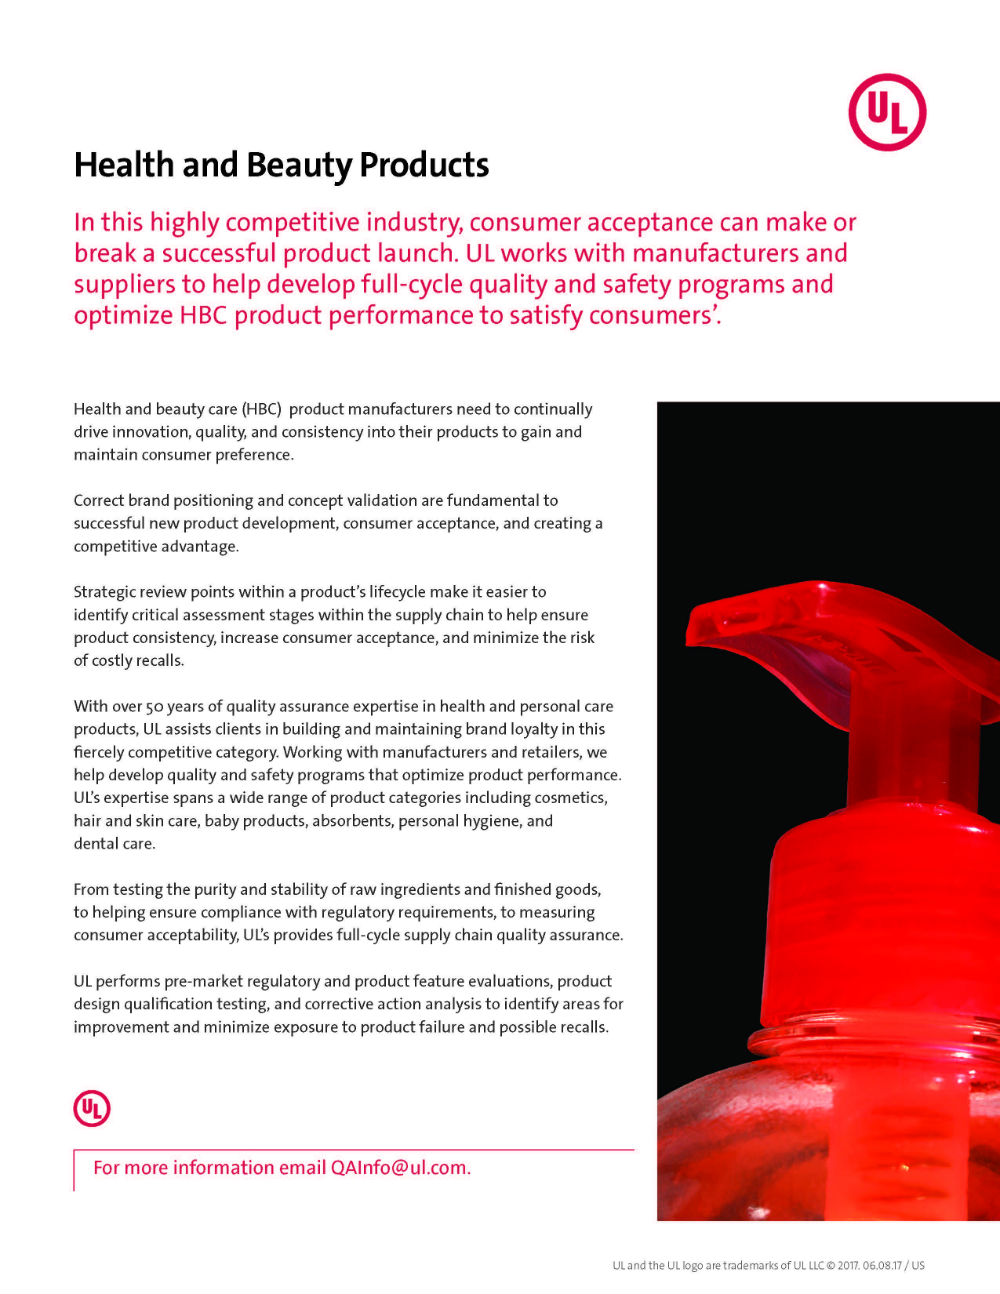 Thumbnail - Article of Health and Beauty Products